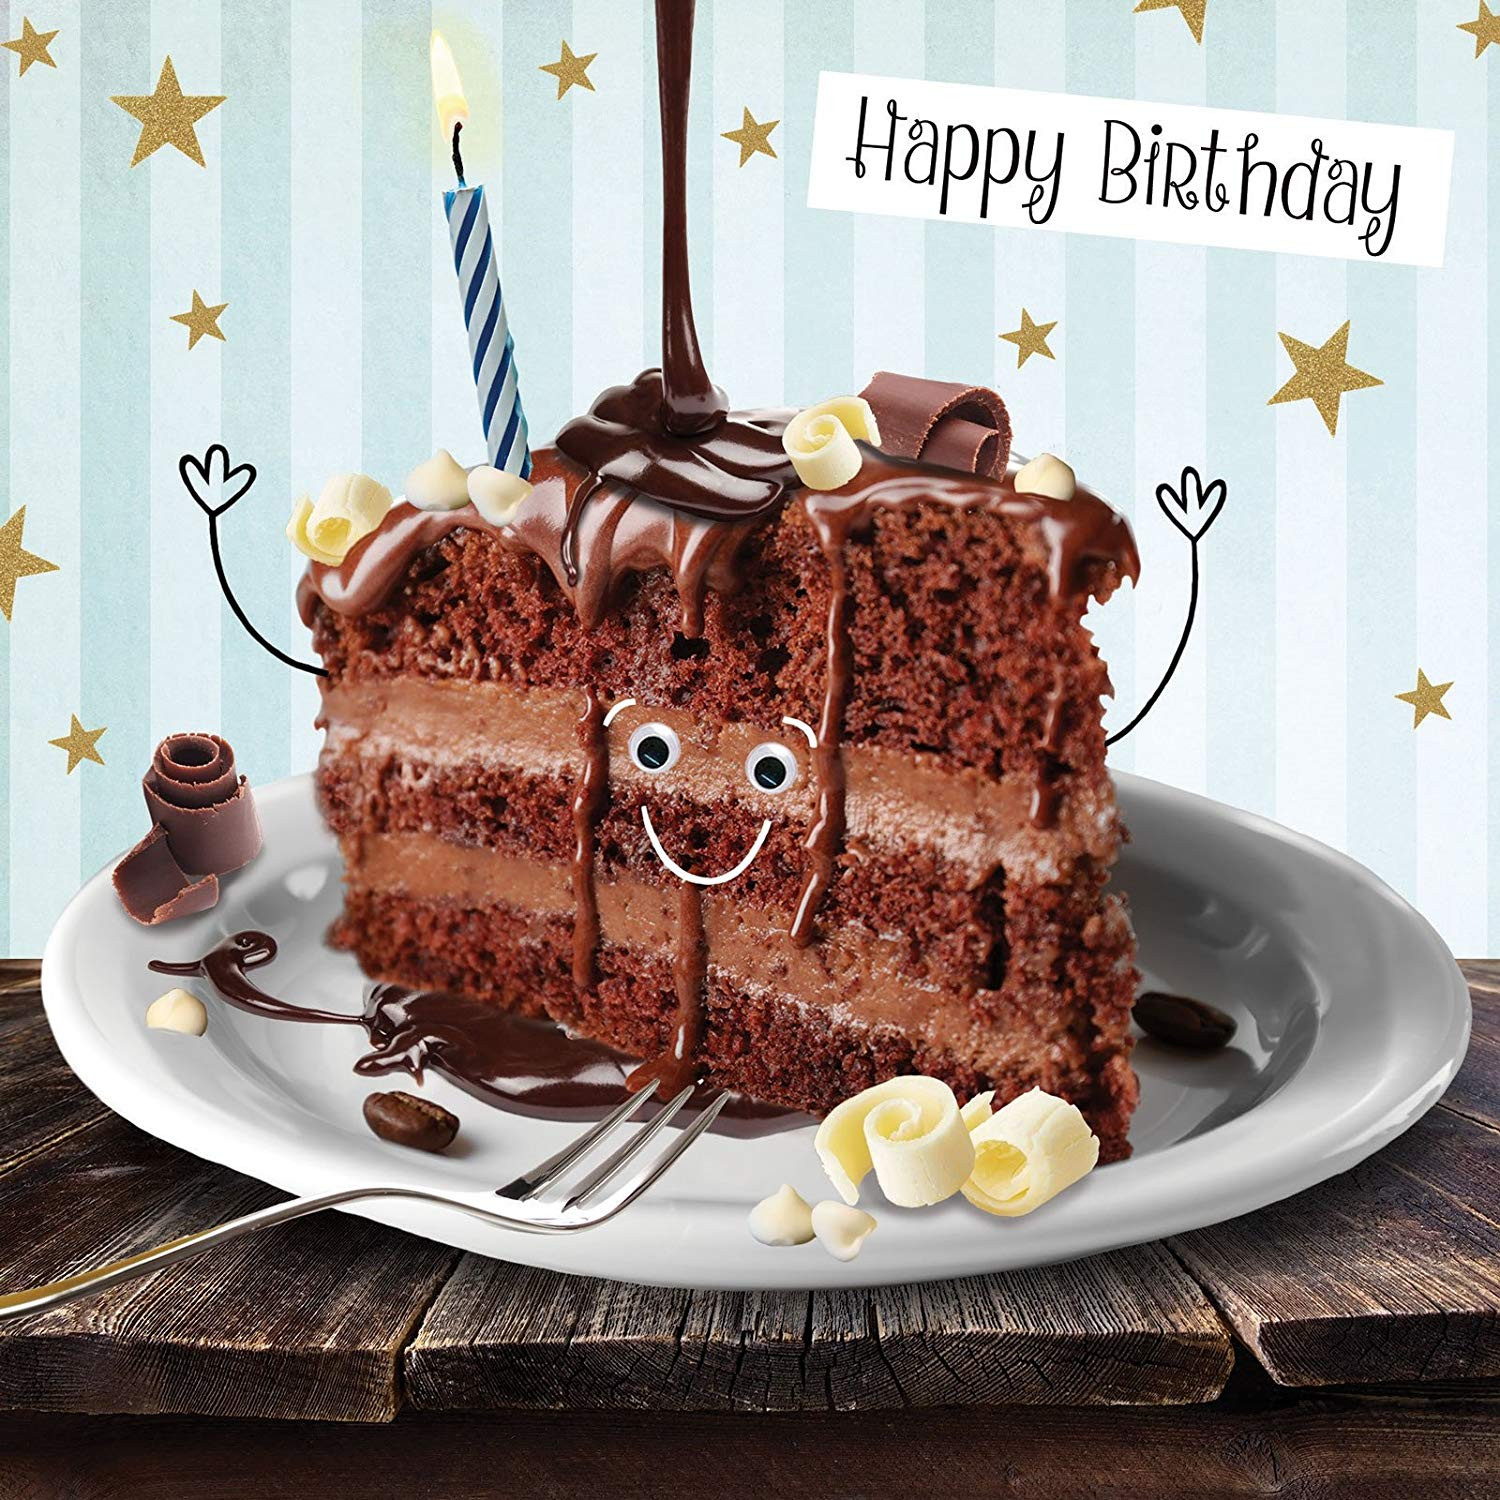 Best ideas about Happy Birthday Choco Cake . Save or Pin Funny Chocolate Cake Birthday Card 3D Goggly Moving Eyes Now.